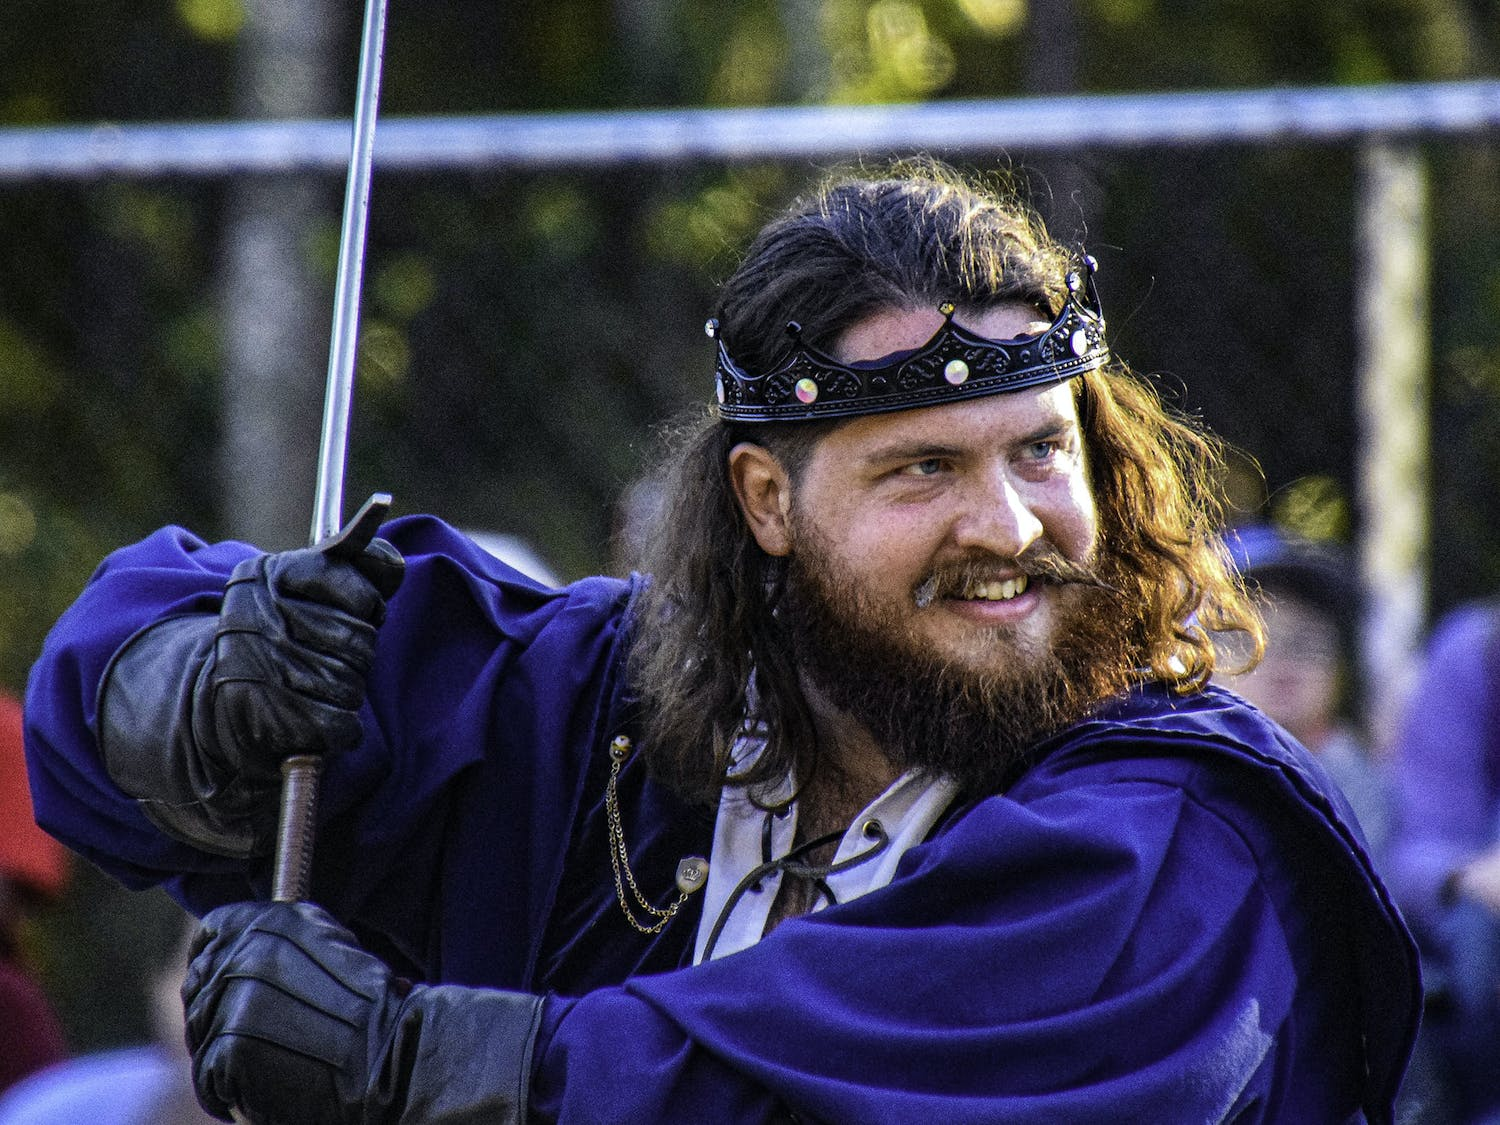 This year marks the Gainesville Hoggetowne Medieval Faire's 34th anniversary. The multi-day event draws in tens of thousands of people, and was so popular that organizers added an extra weekend this year to help with overcrowding. Visitors can eat fried fair food, buy from over 160 merchants, watch people fight with swords and more.